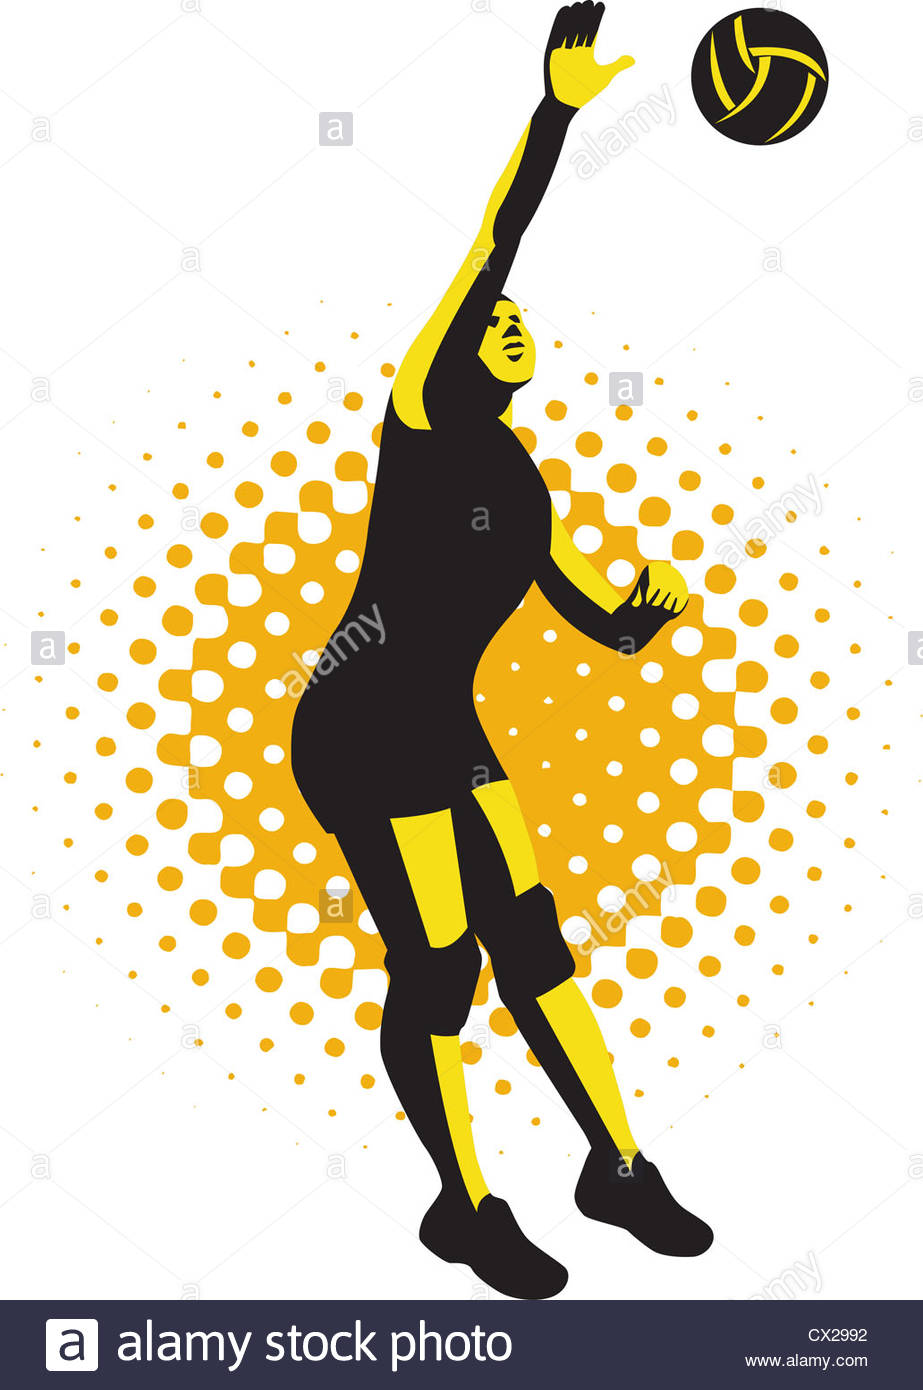 923x1390 Illustration Of A Female Volleyball Player Jumping Spiking Ball